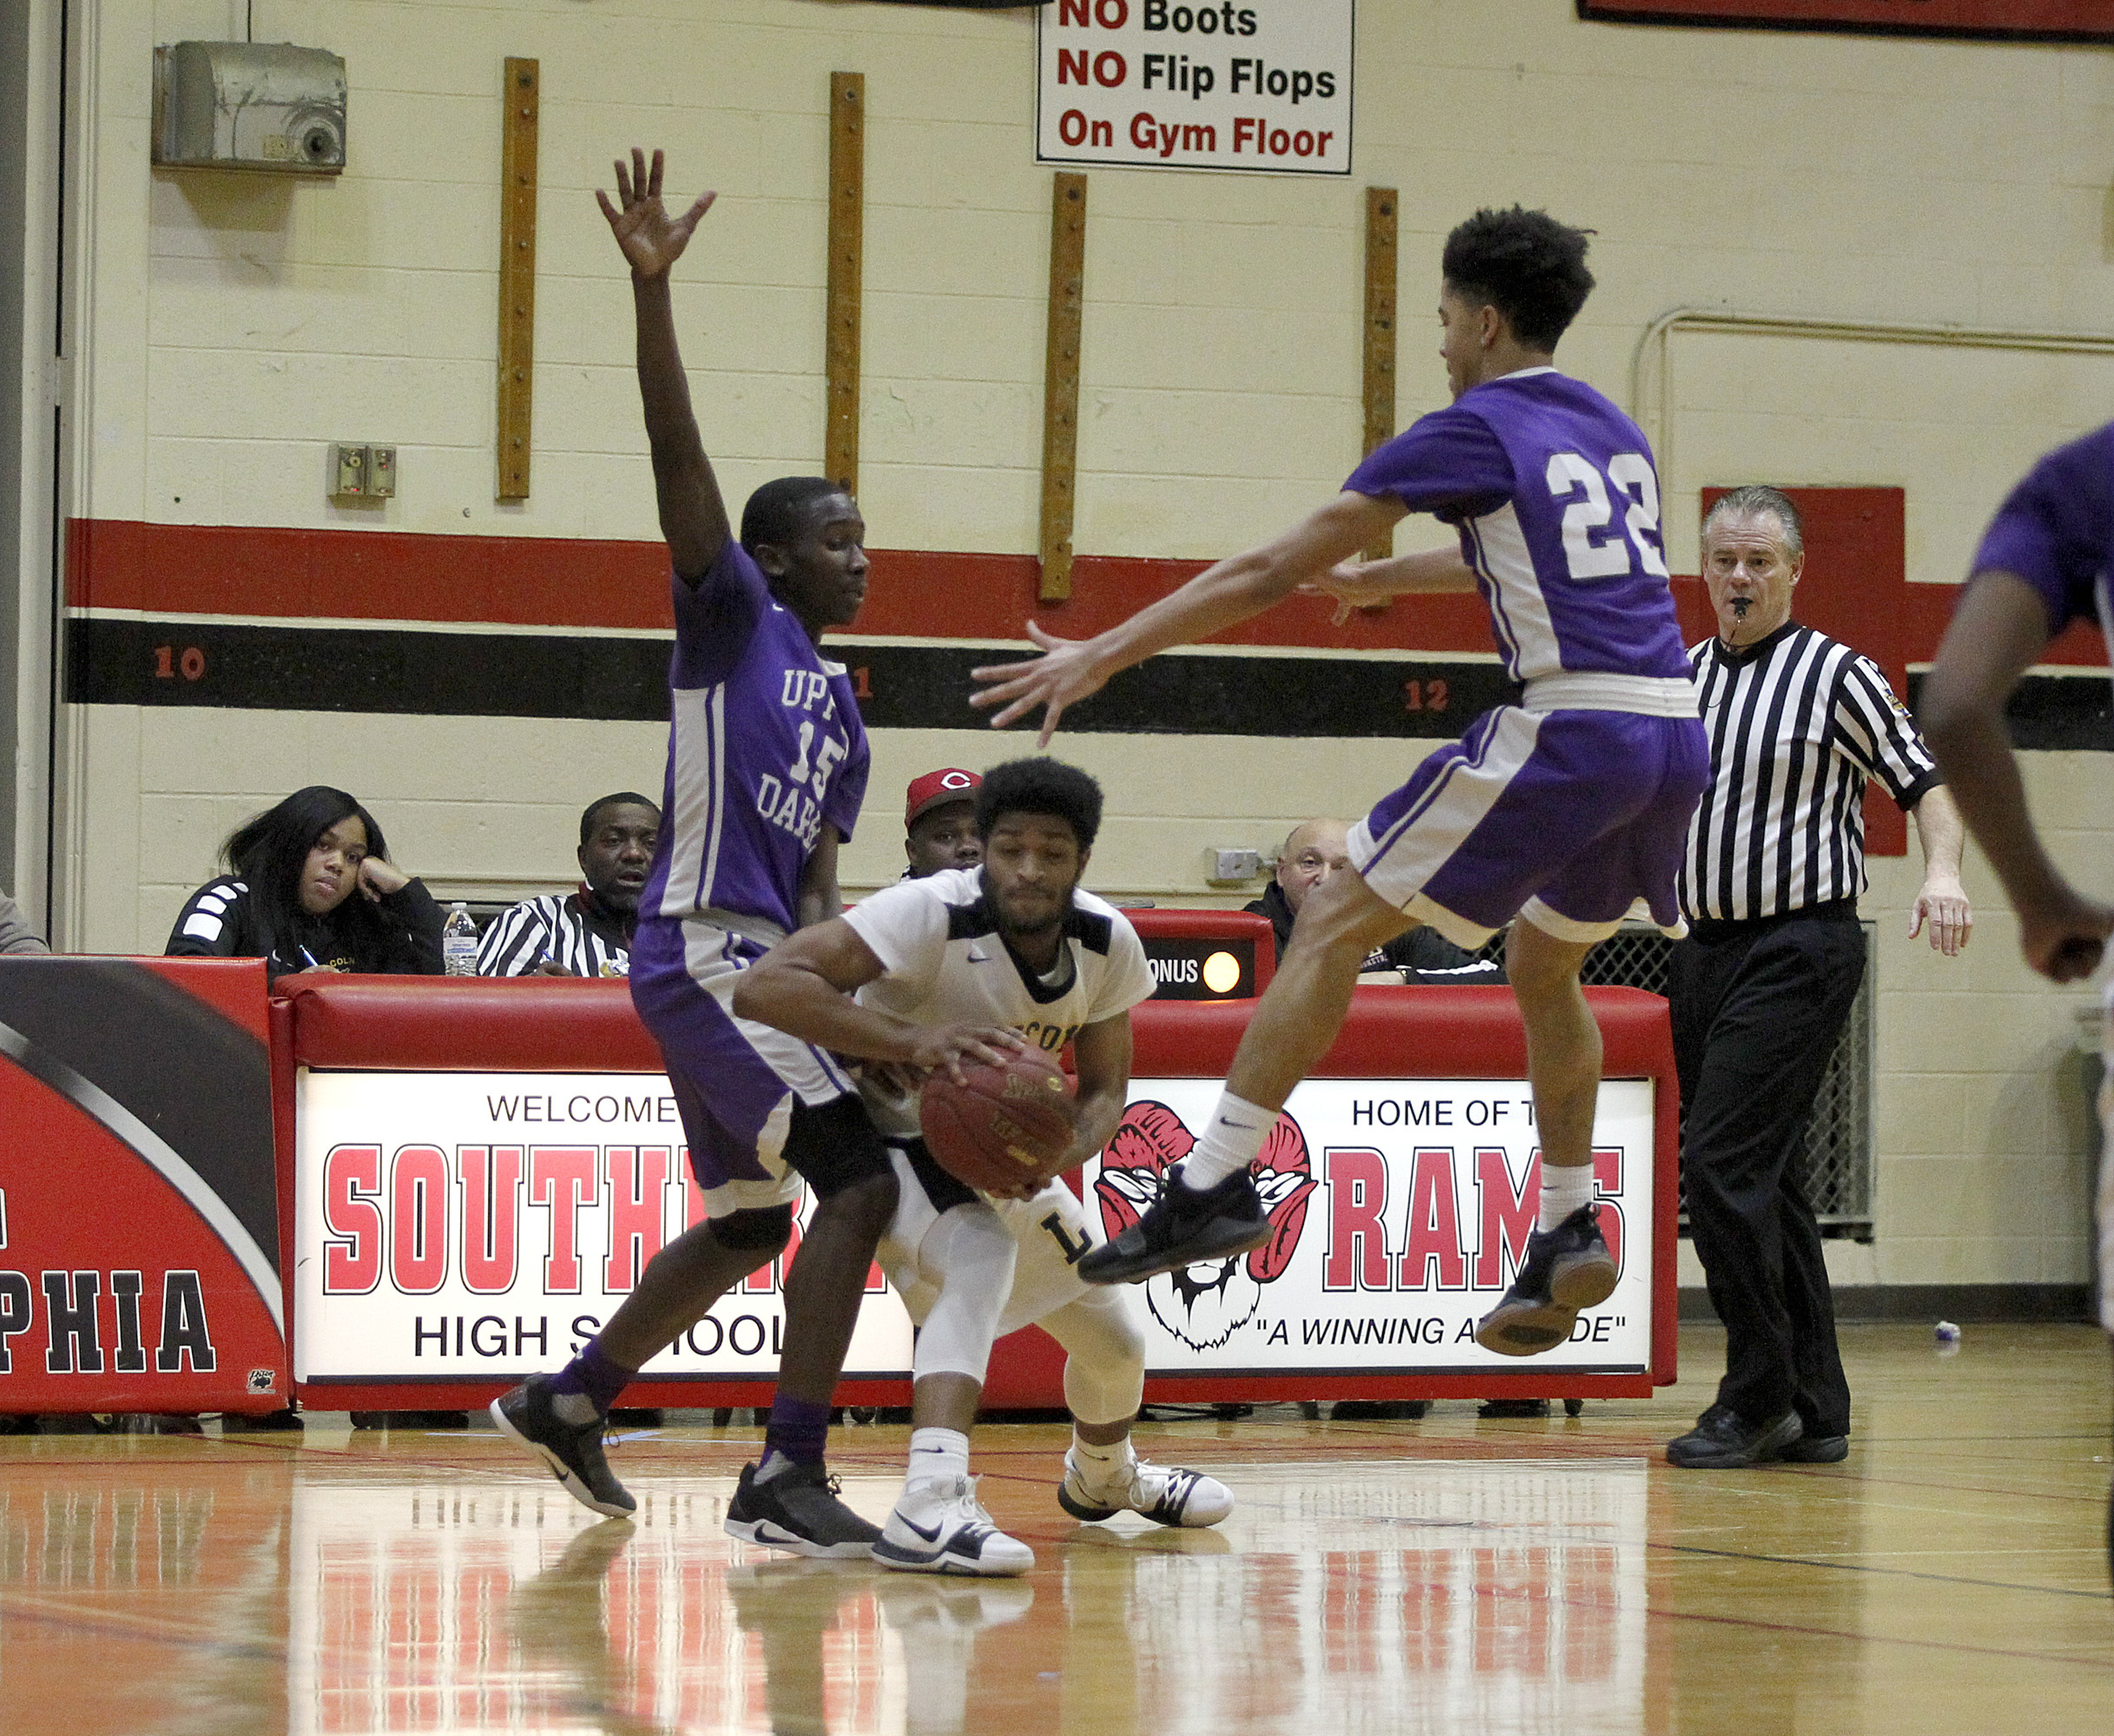 Lincoln´s Emeuel Charleston (center) looks to pass as Upper Darby´s Diby Keita (15) and Phil Williams (22) defend.